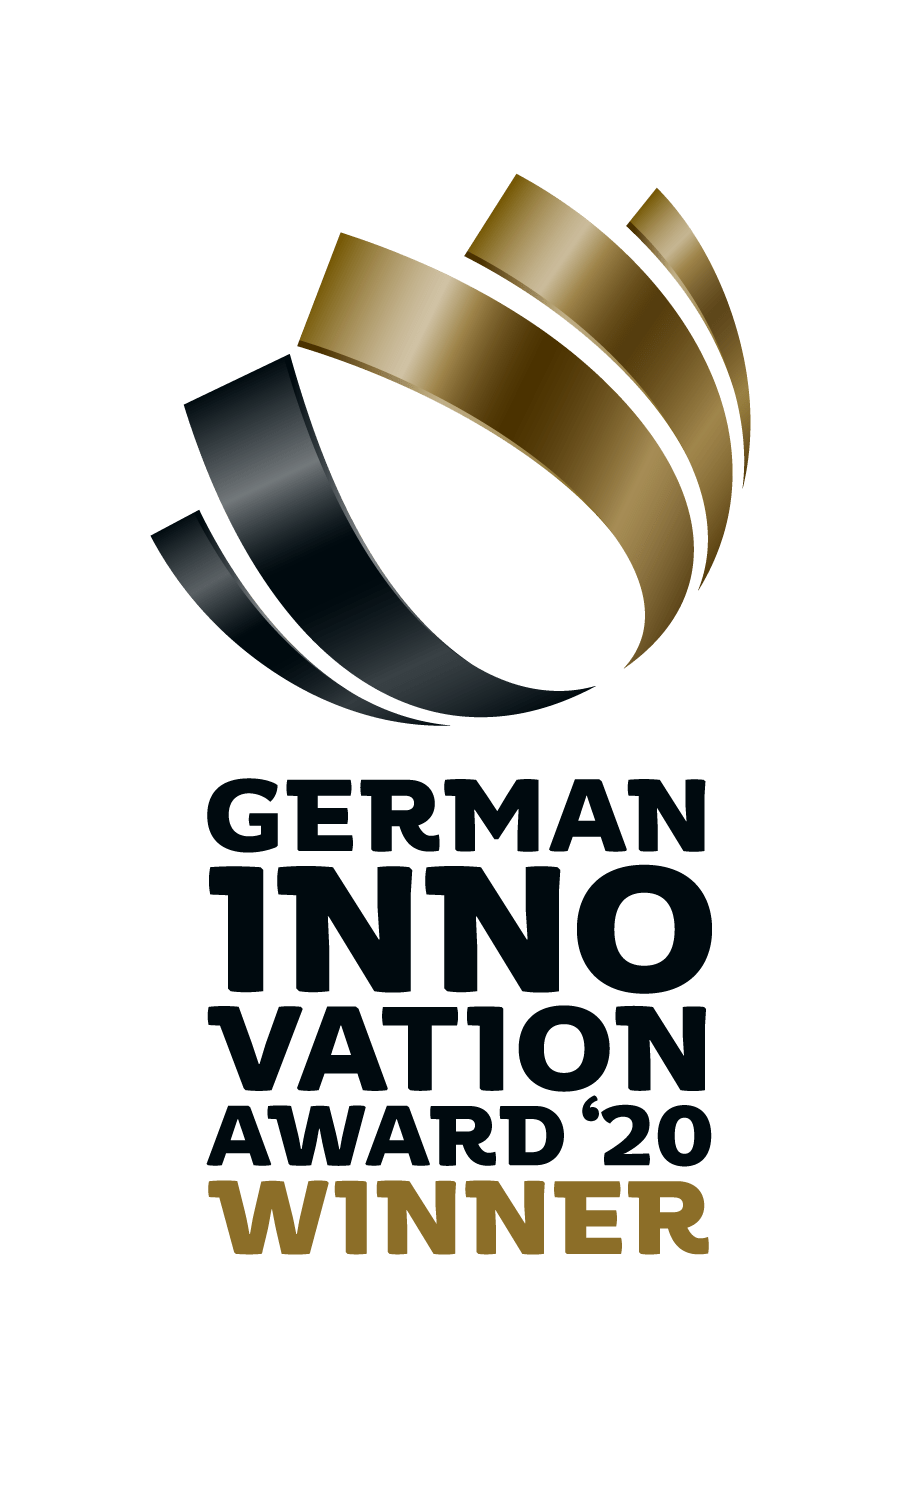 Germann Innovation Award '20 Winner